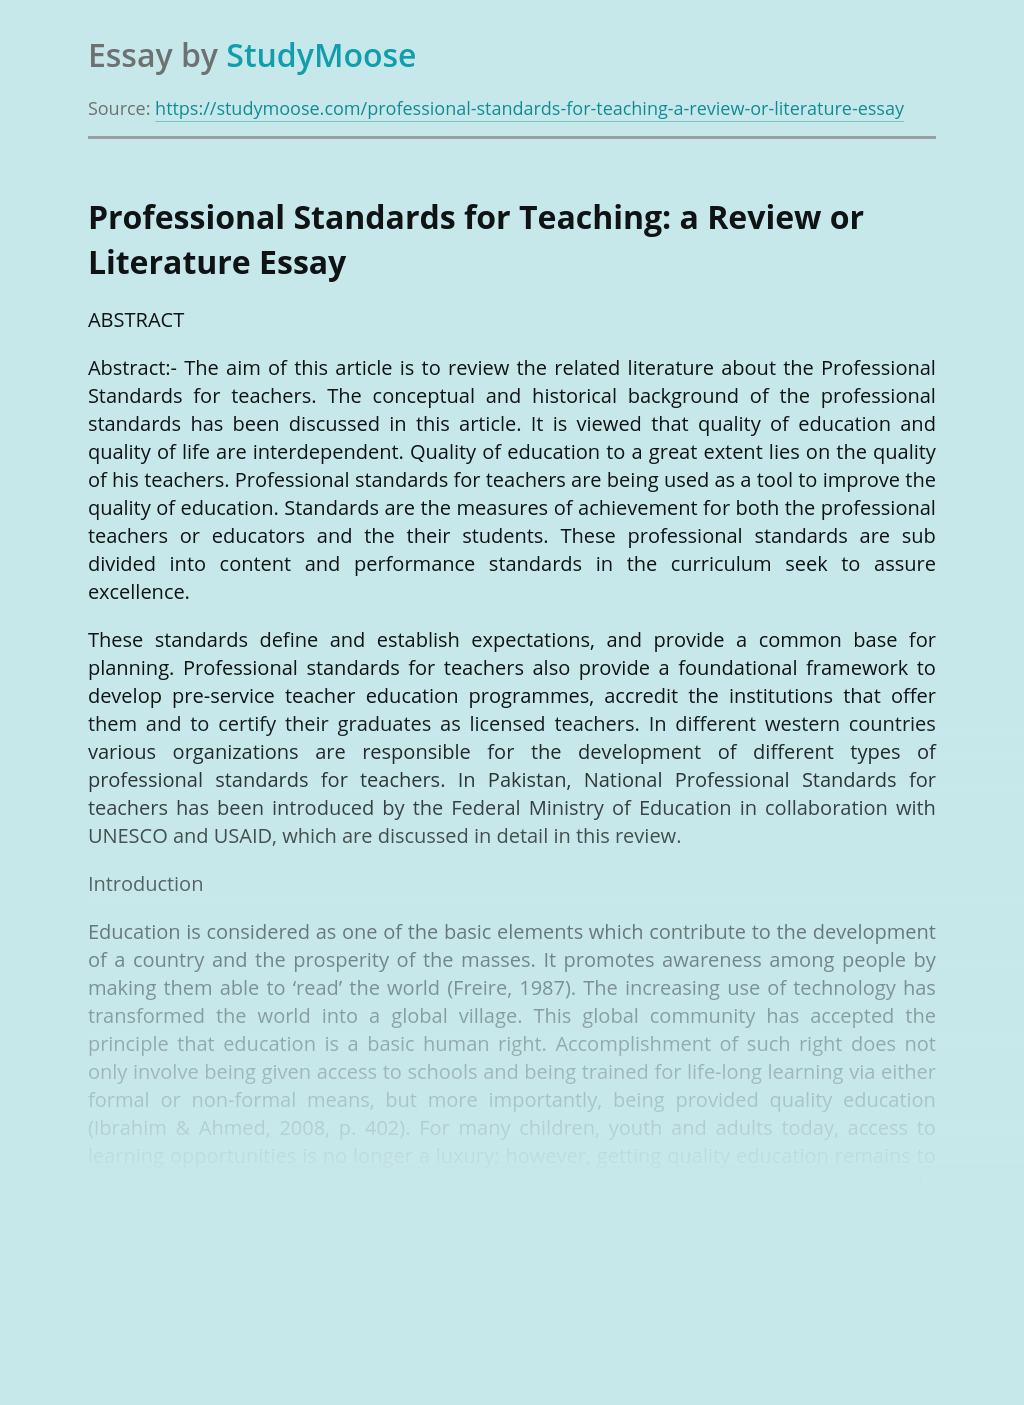 Professional Standards for Teaching: a Review or Literature